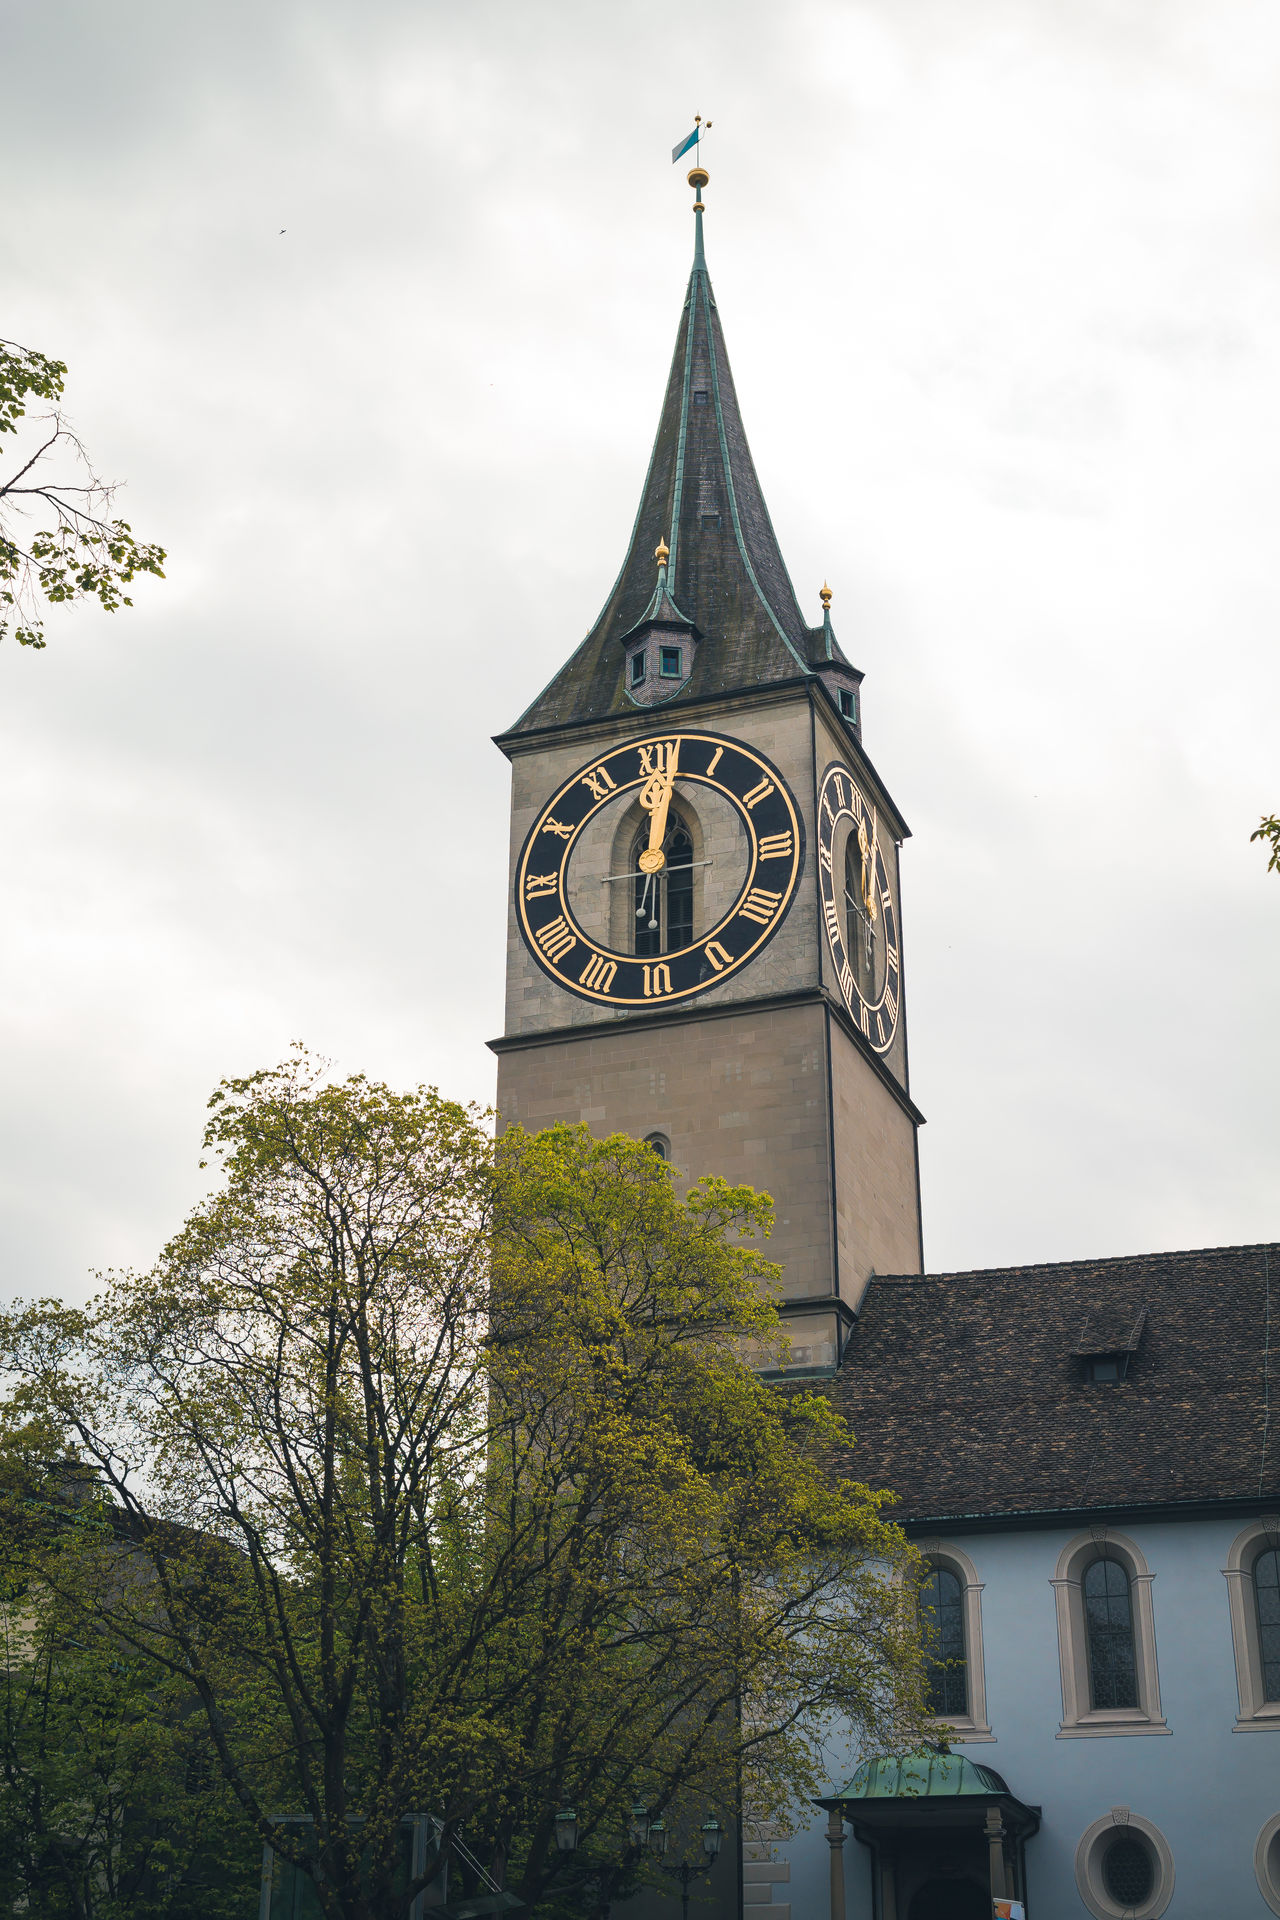 Streets of Zürich Architecture Bell Tower Branch Building Exterior Built Structure Clock Clock Face Clock Tower Cloud - Sky Day Low Angle View Minute Hand No People Outdoors Sky Time Tree